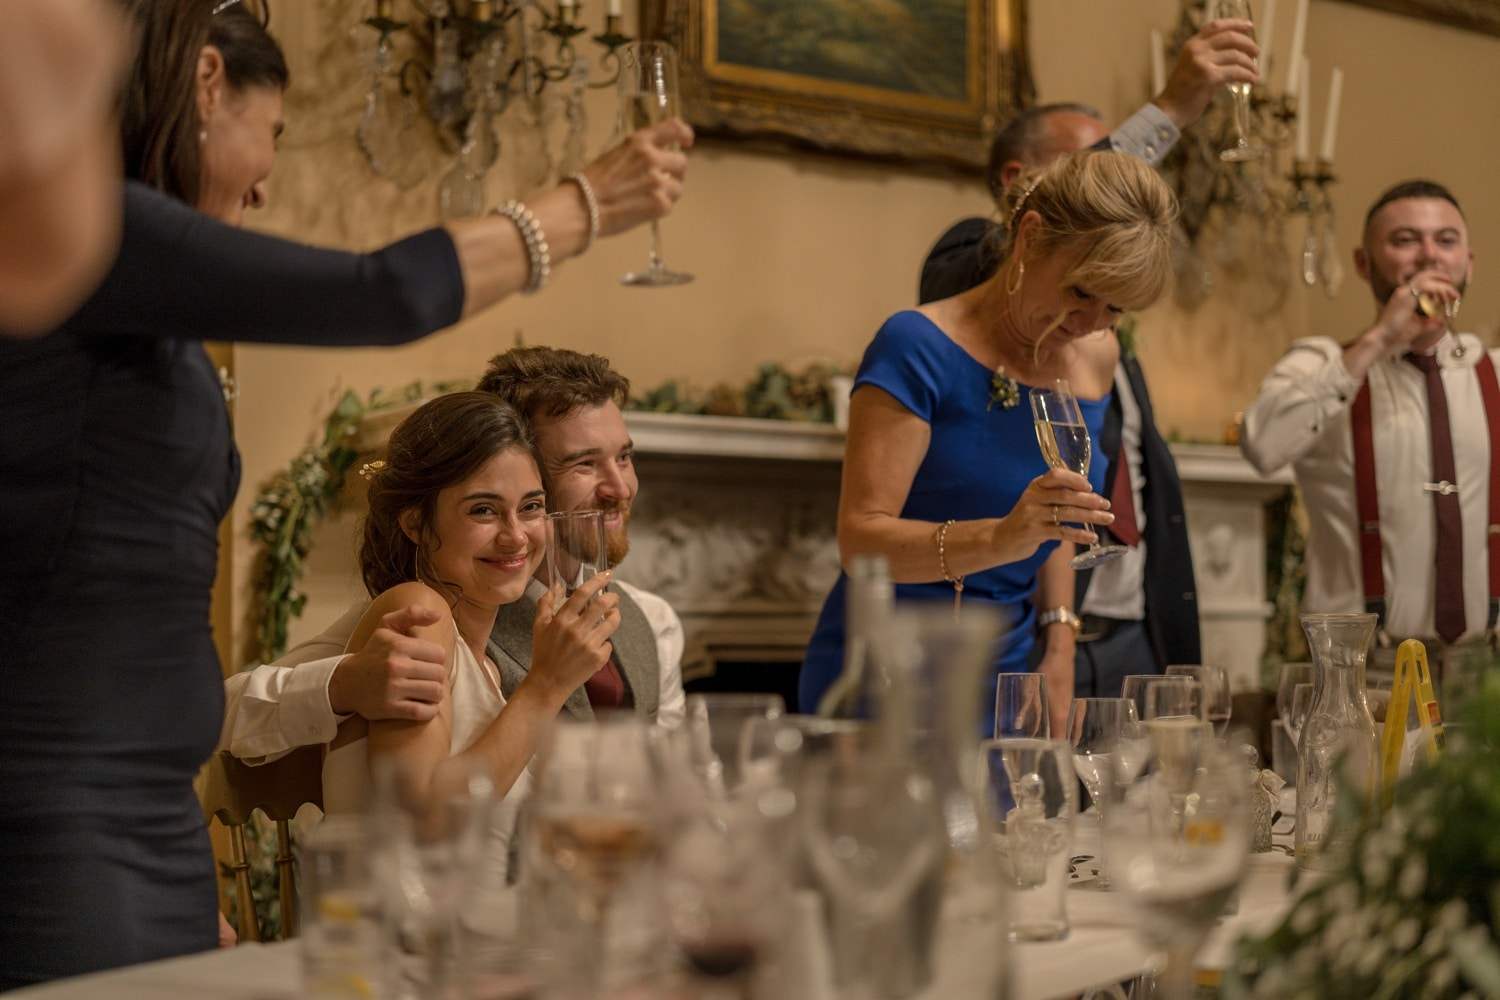 Wedding speeches at Orchardleigh House, Somerset